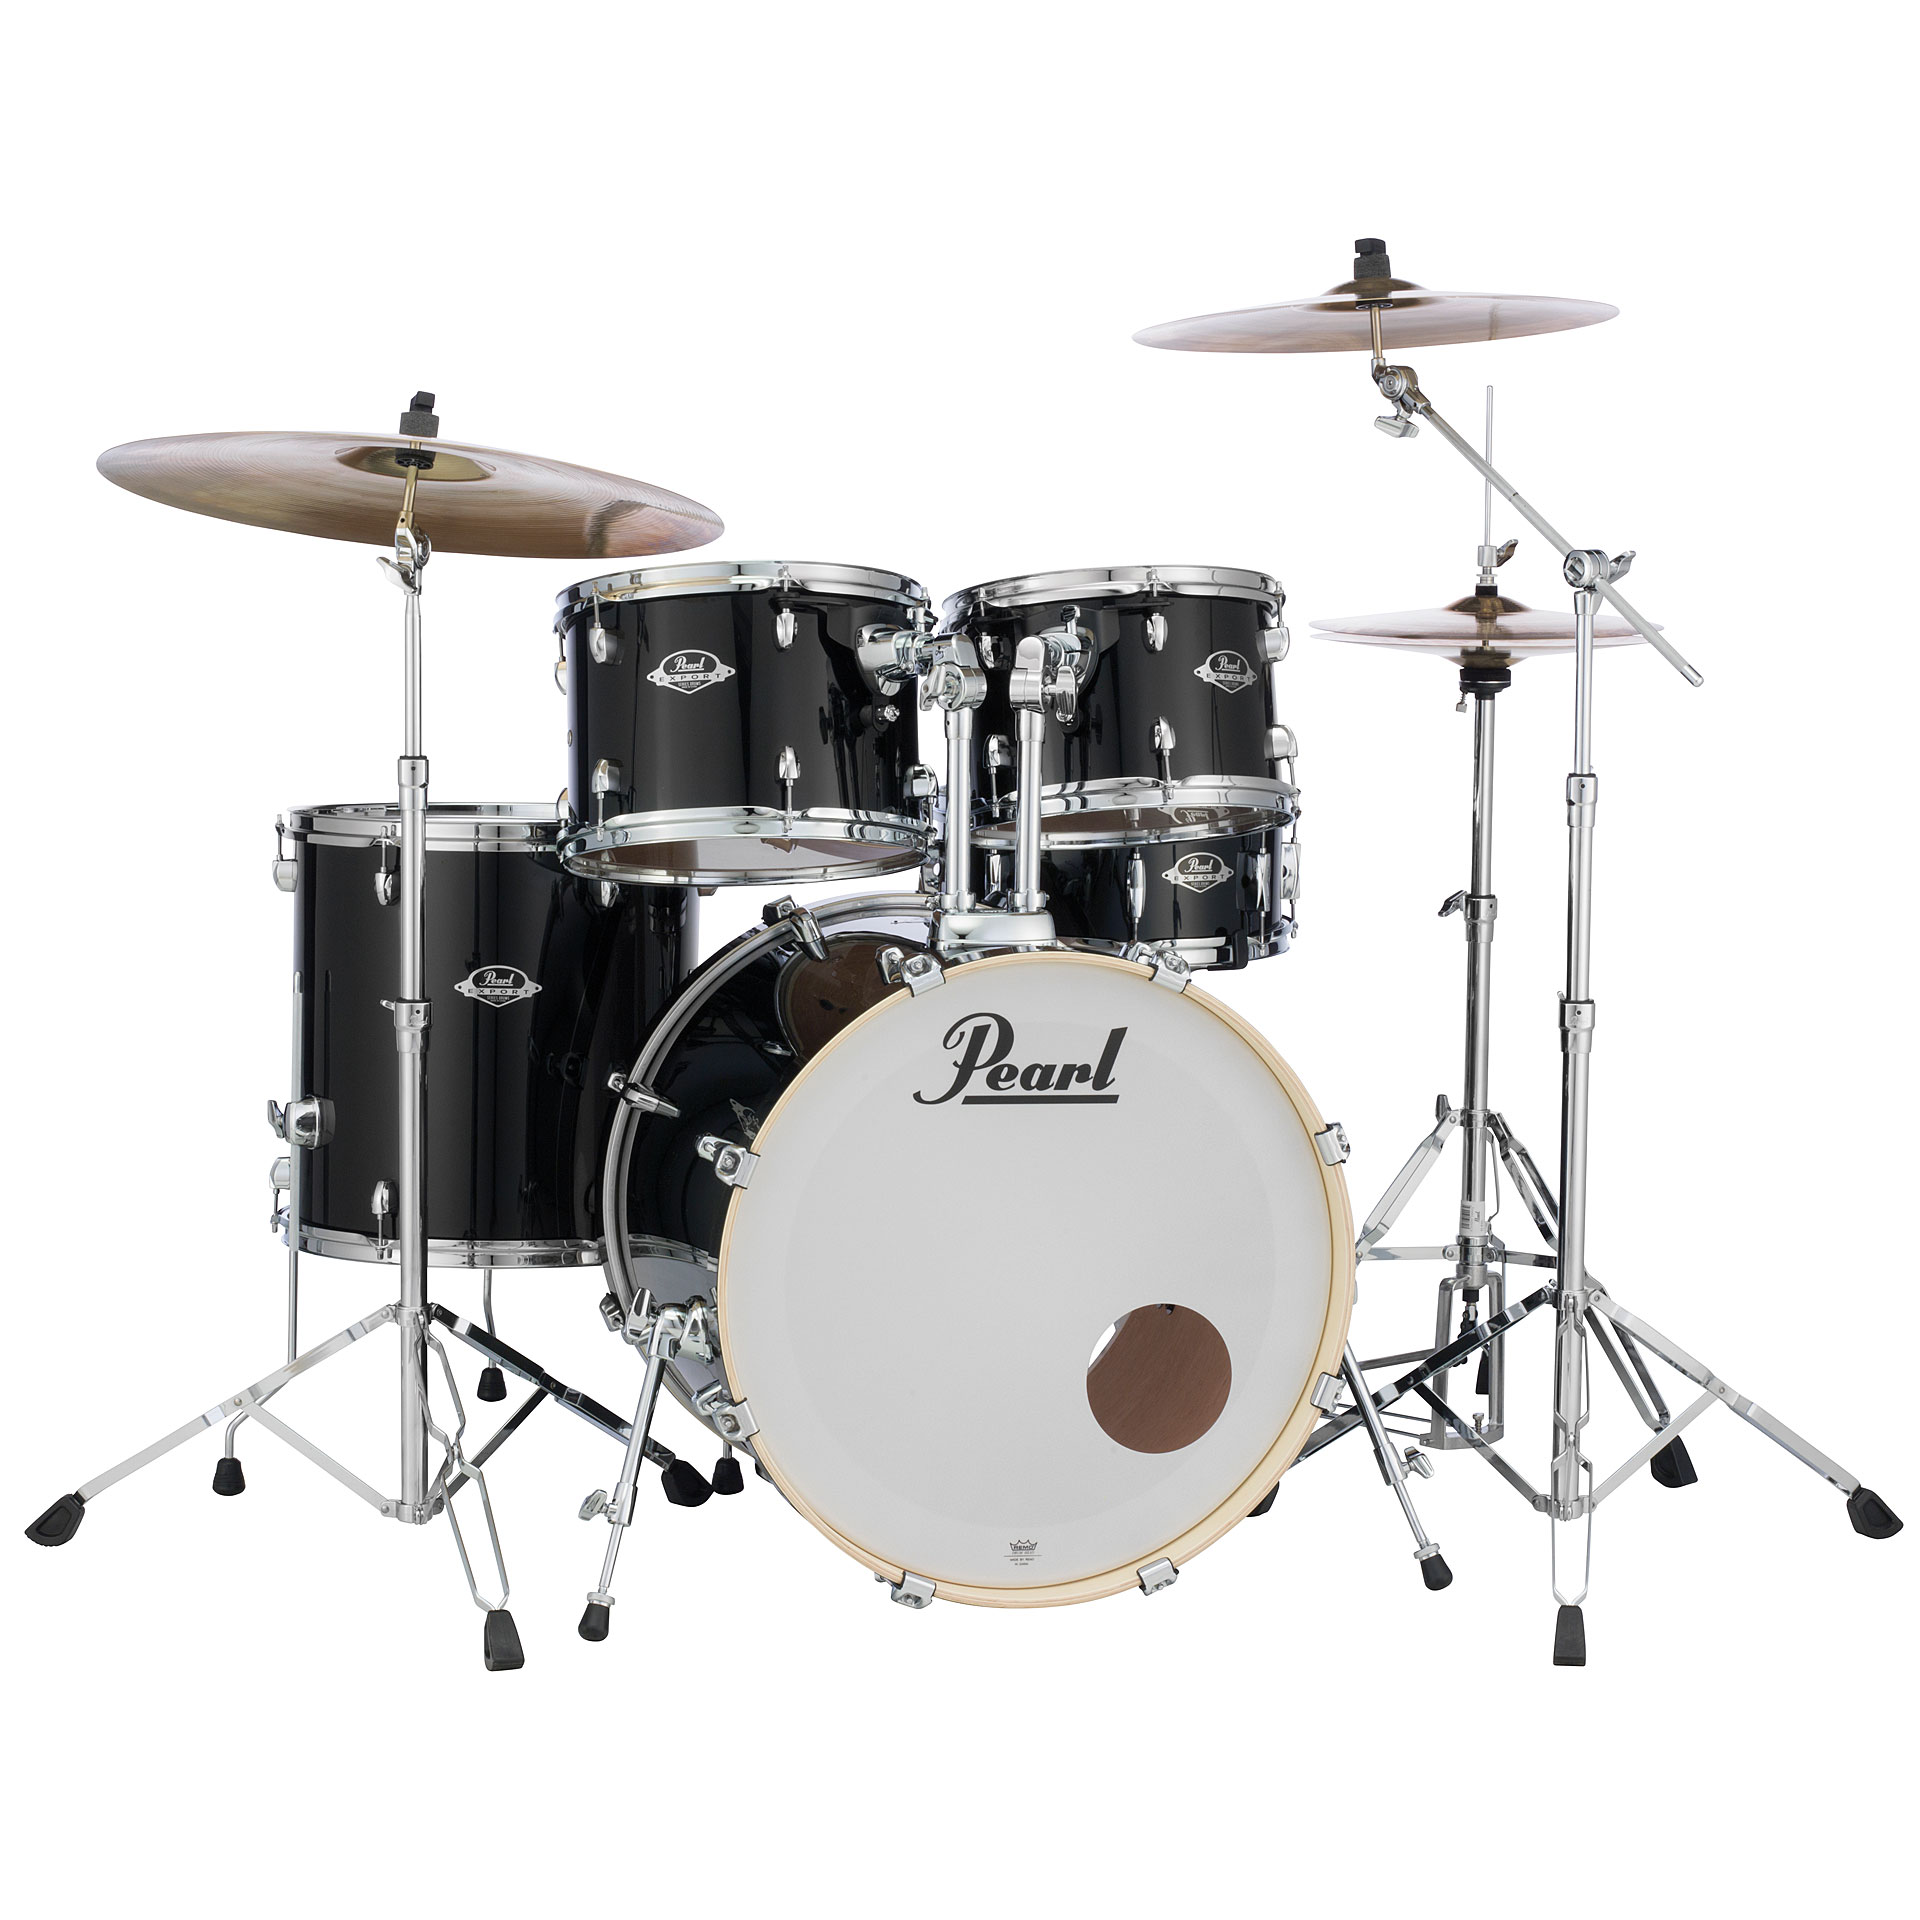 dating pearl export drums Pearl export, 80s - posted in vintage venue: good morning most high exalted experts you have helped very much in the past and i beg your indulgence again pearl export kit 80s vintage.